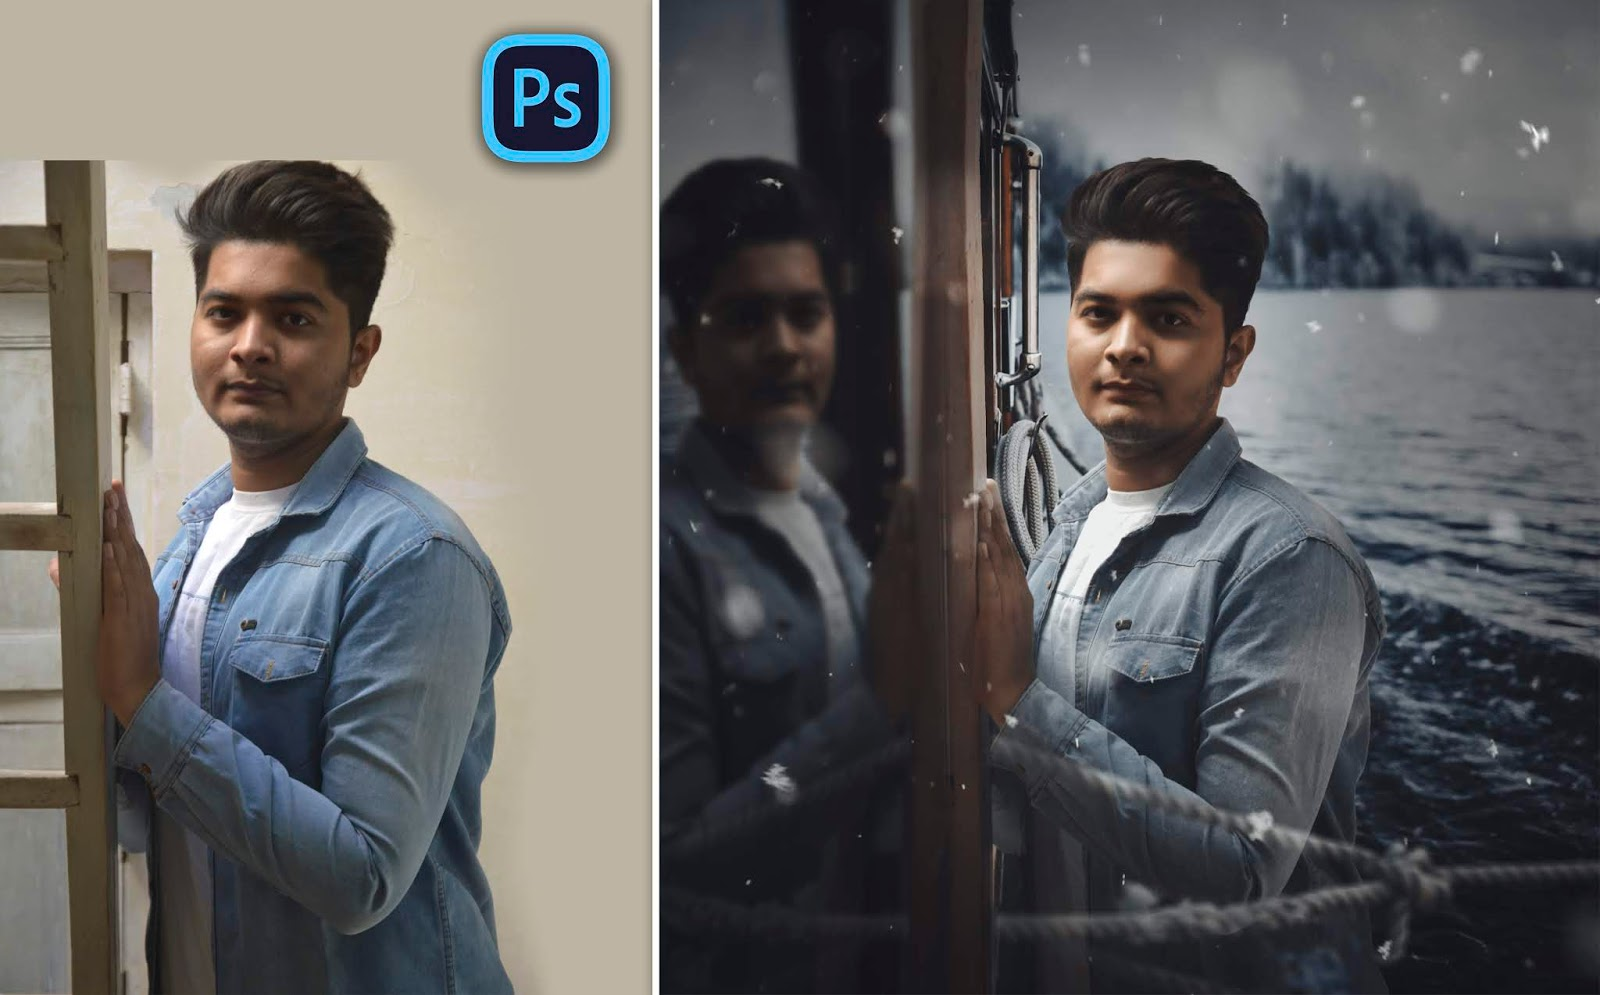 New Concept | Reflection on Window like Trending Instagram Moody Portraits Photo Editing in Photoshop cc